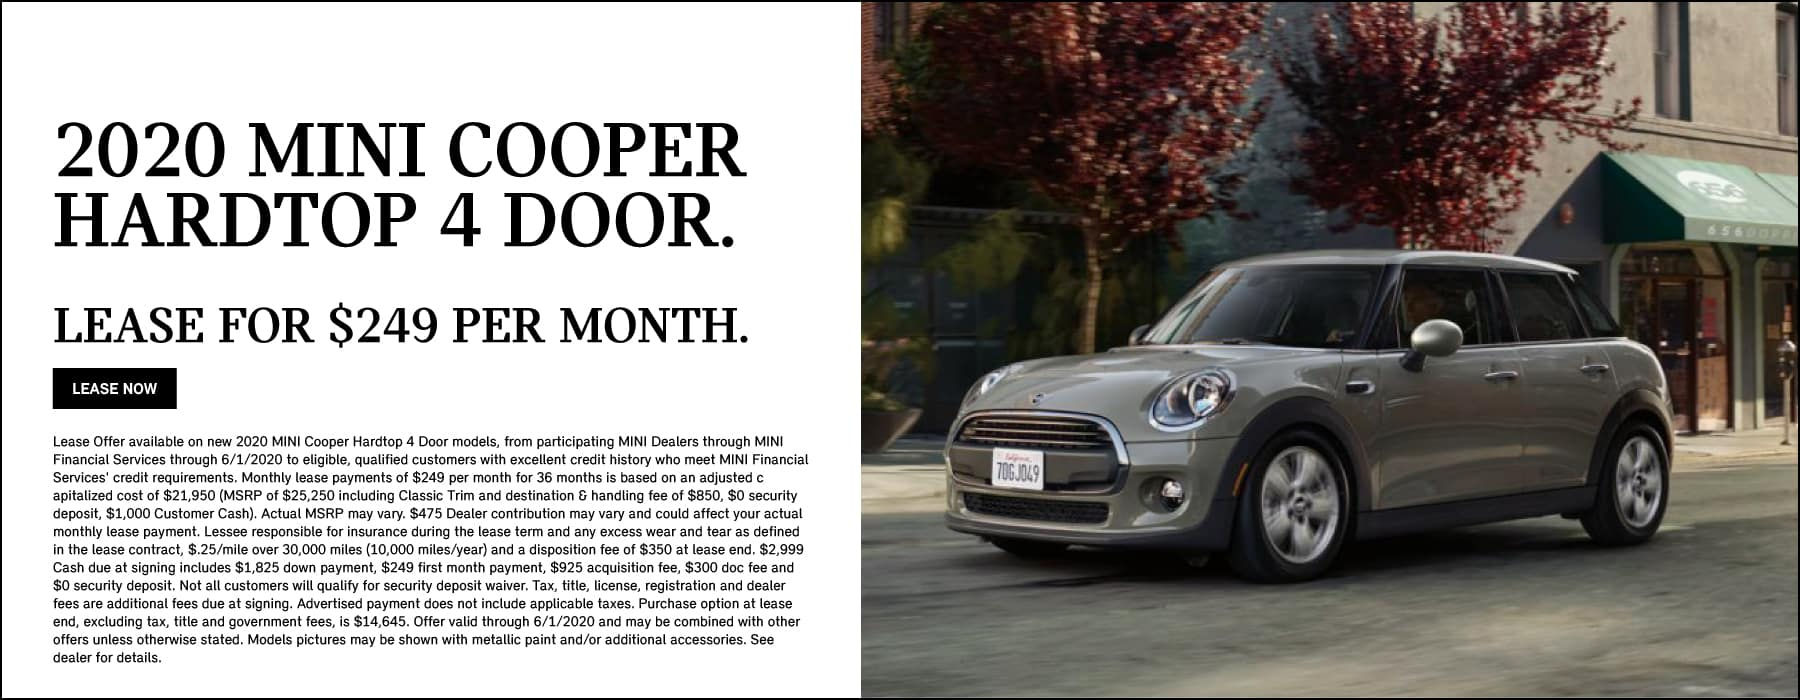 2020 MINI Cooper Hardtop 4 Door Lease: $249/MO for 36 months